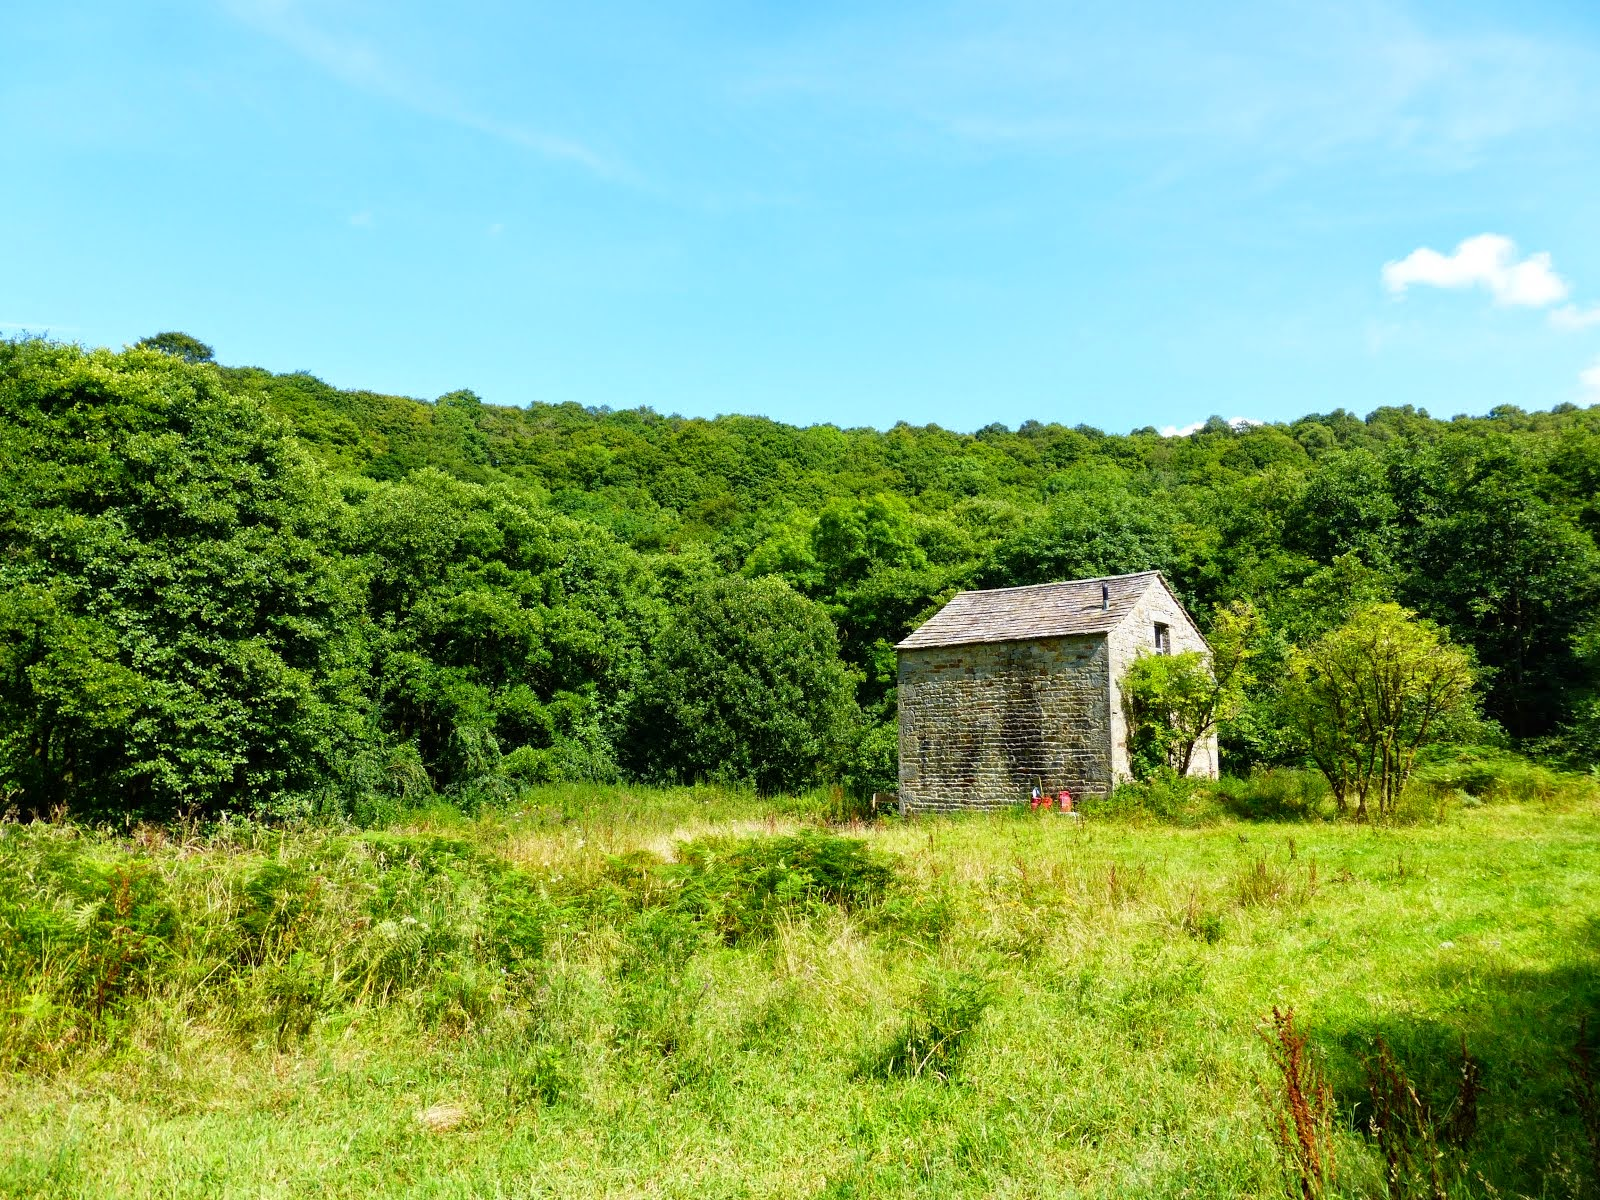 The barn is surrounded by trees,river and meadow